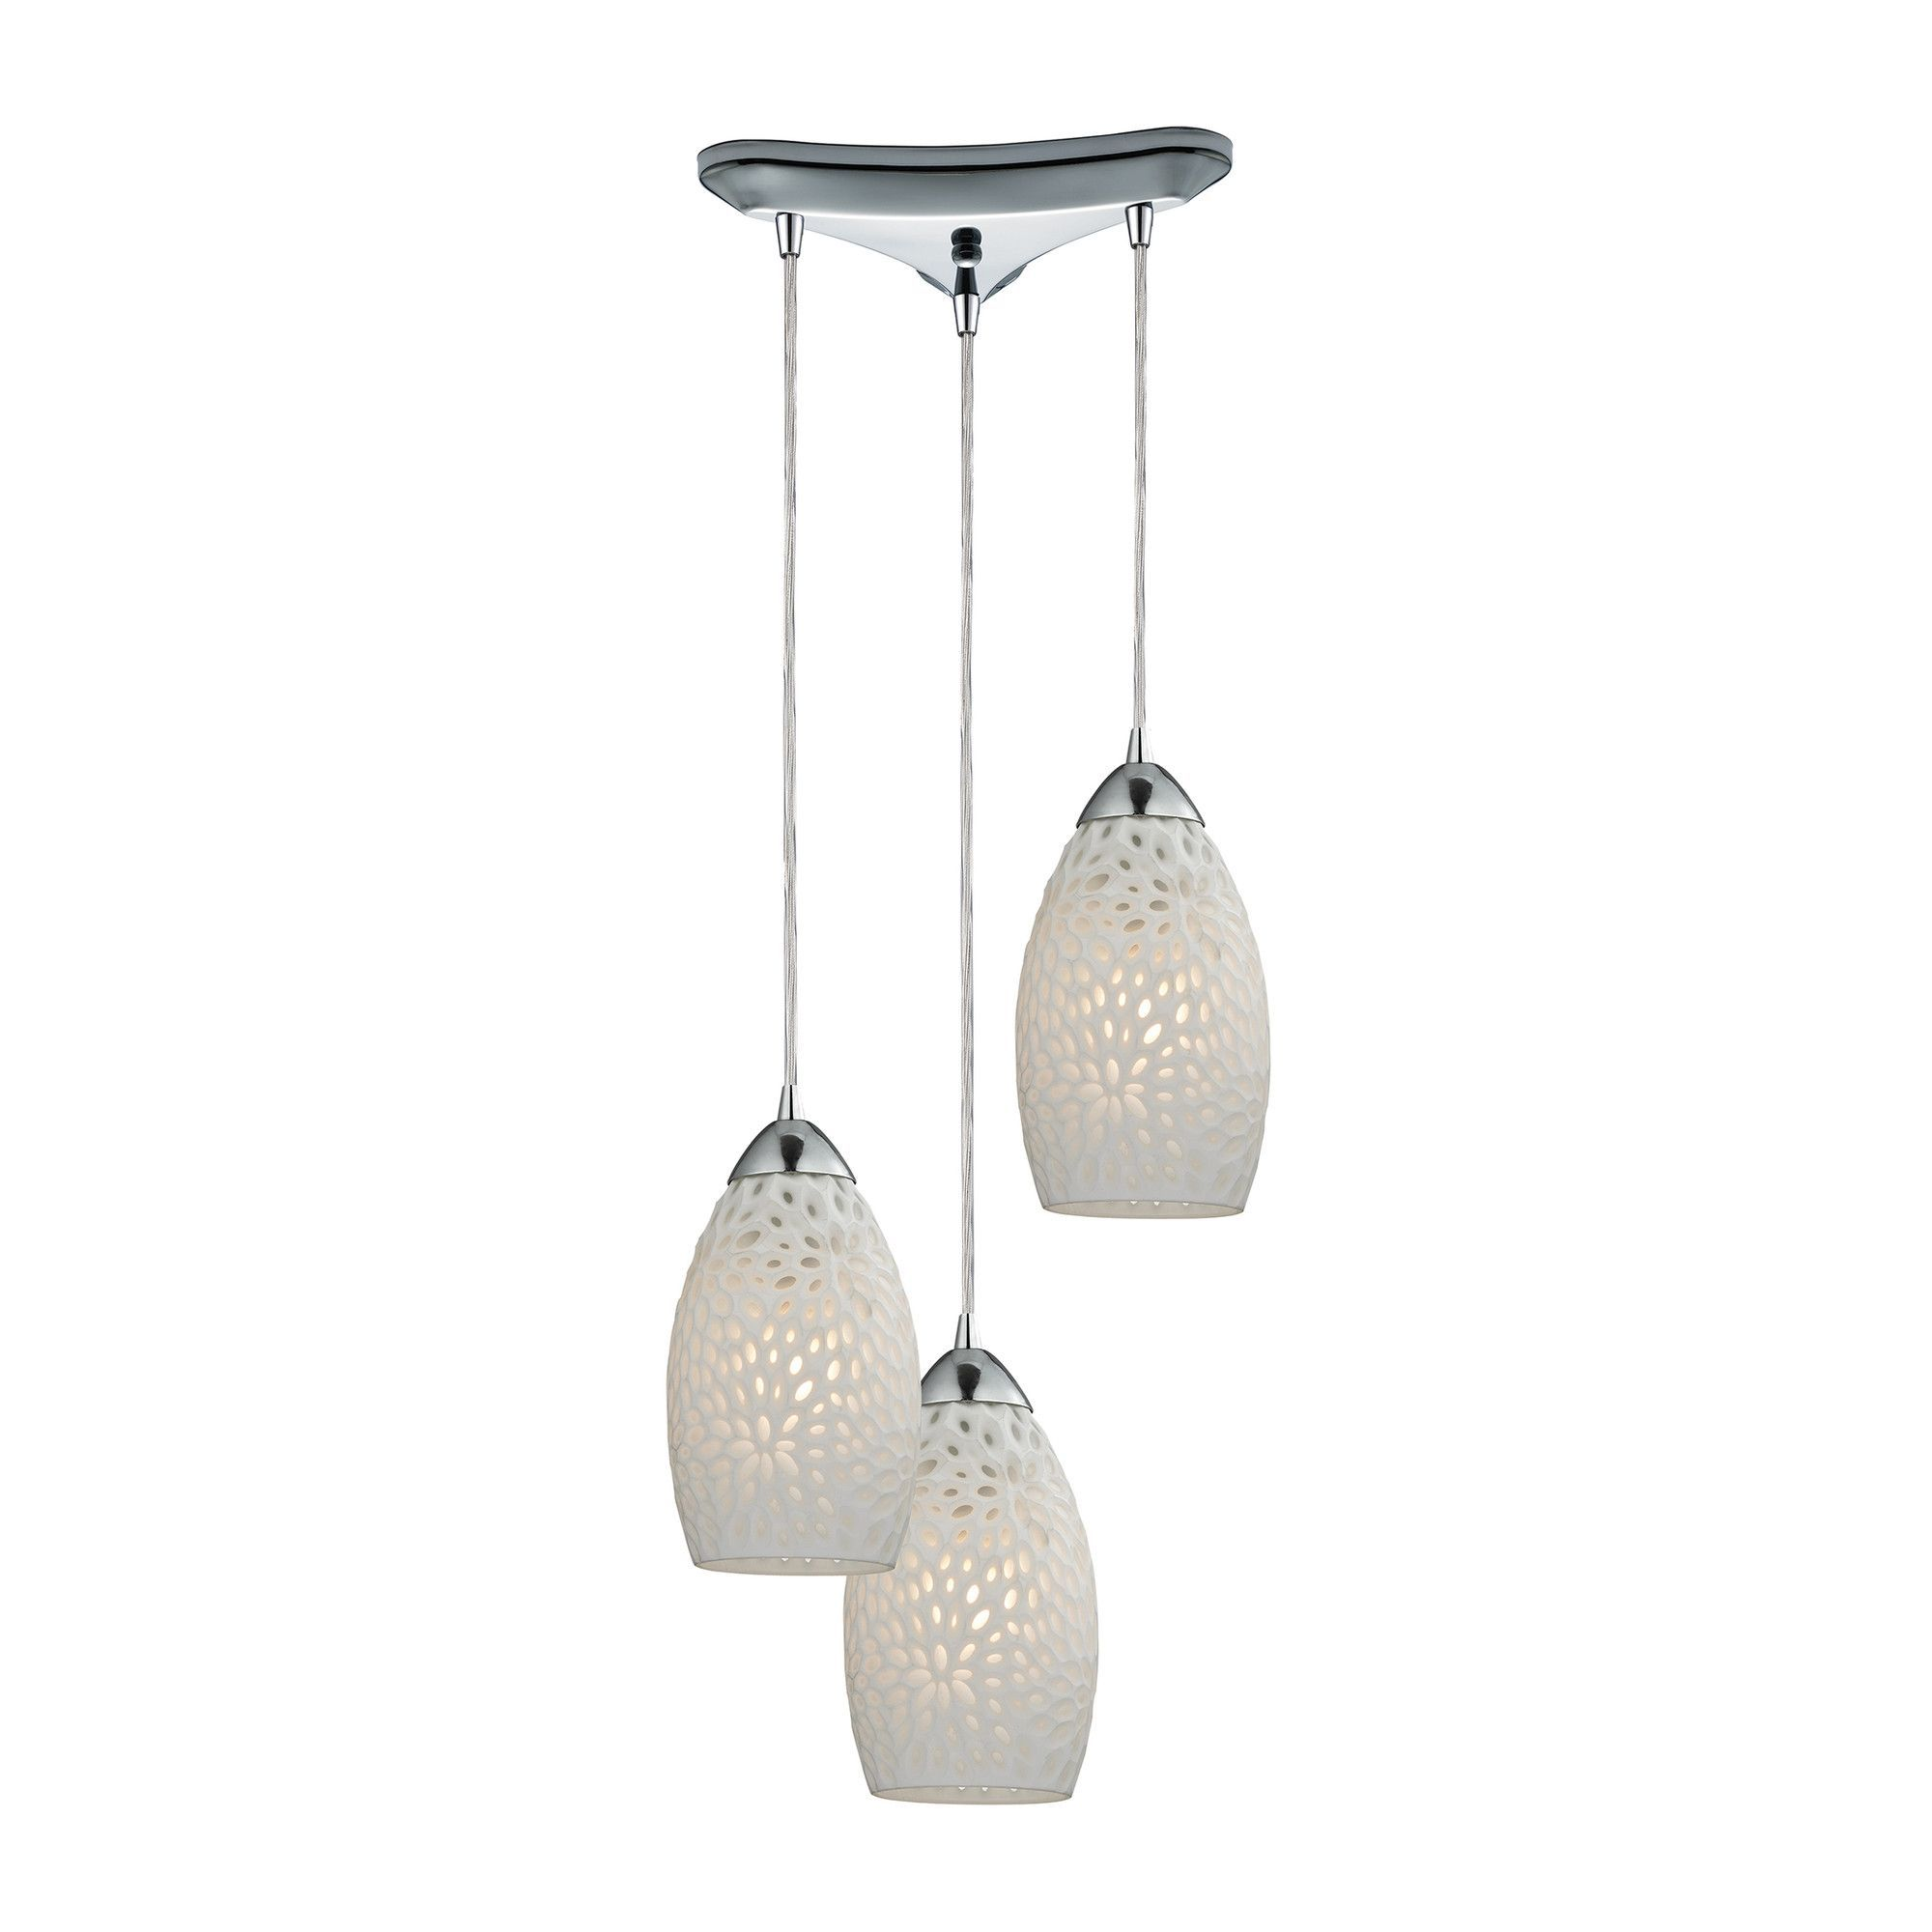 Etched glass light kitchen island pendant products pinterest